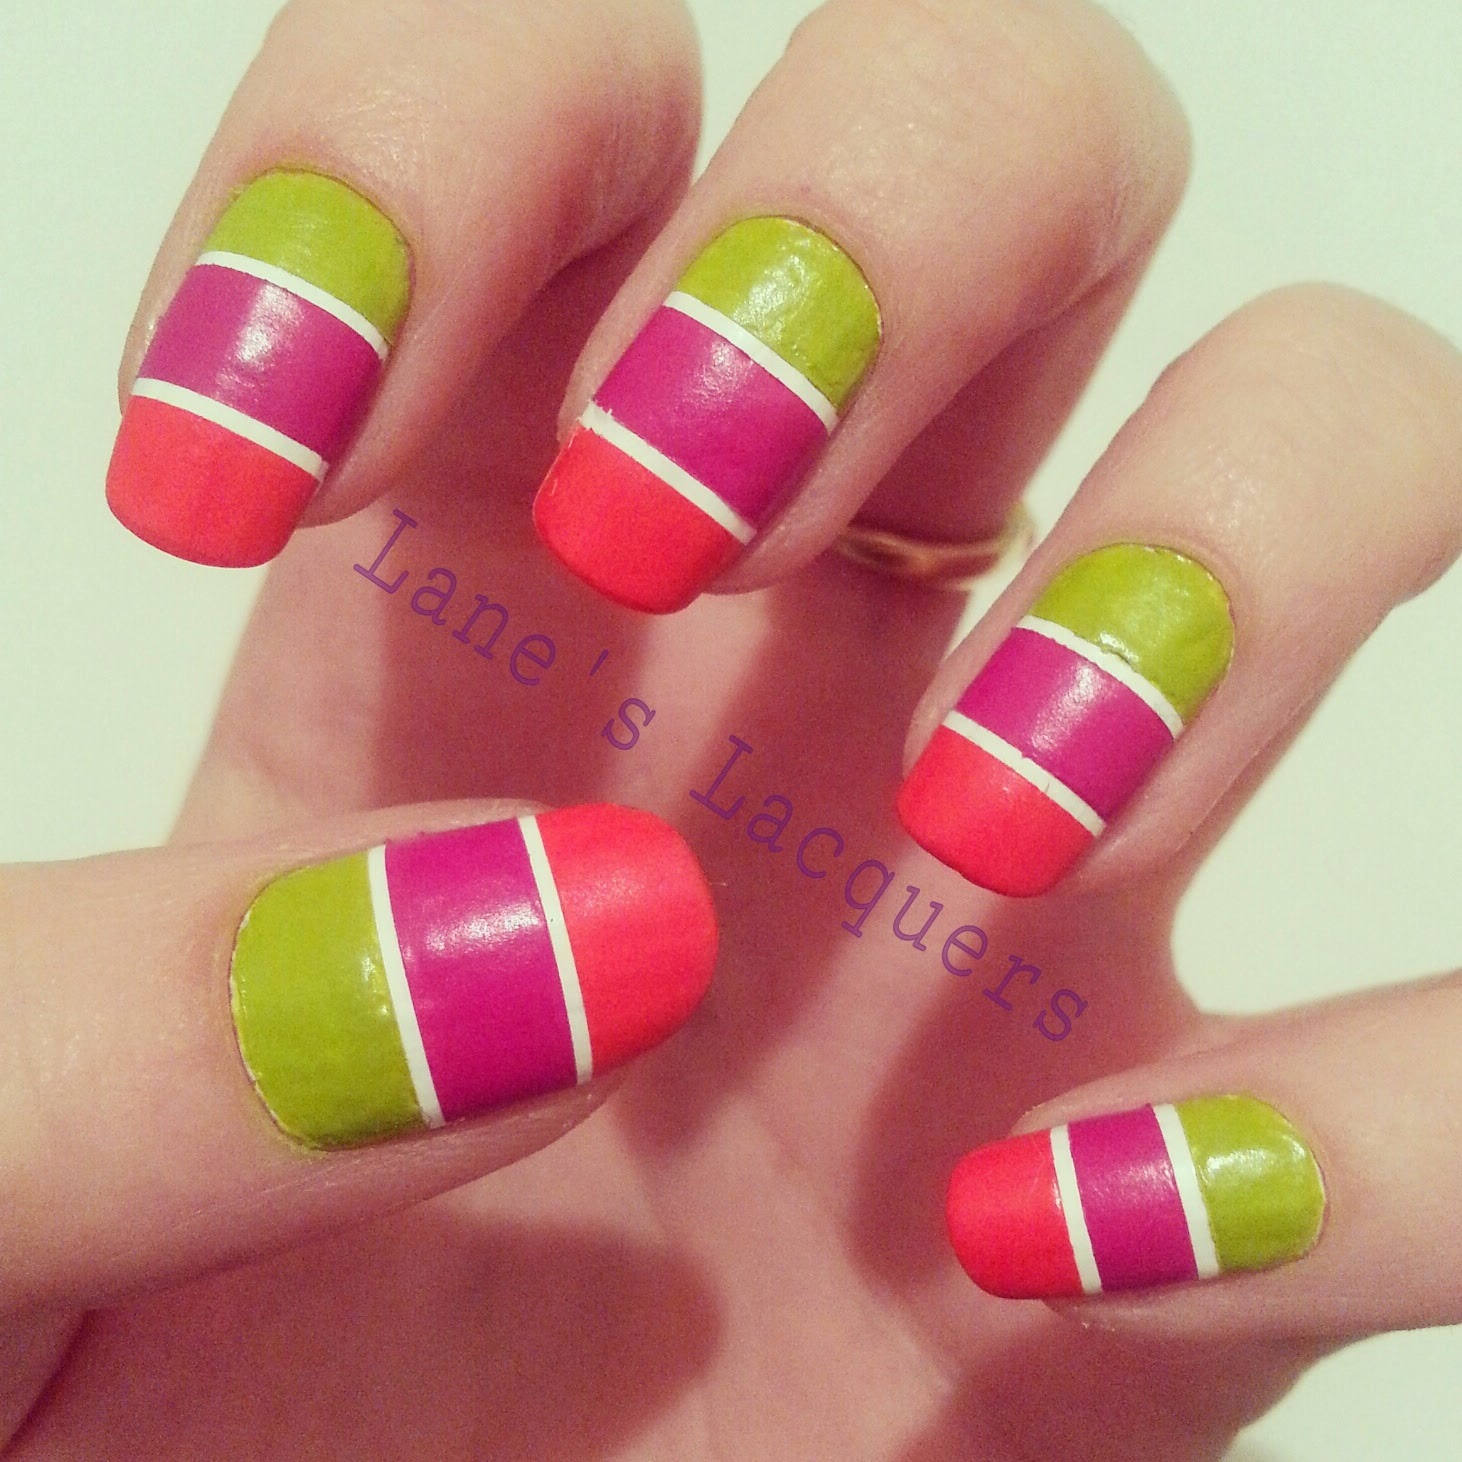 barry-m-summer-matte-trio-tape-nail-art (2)